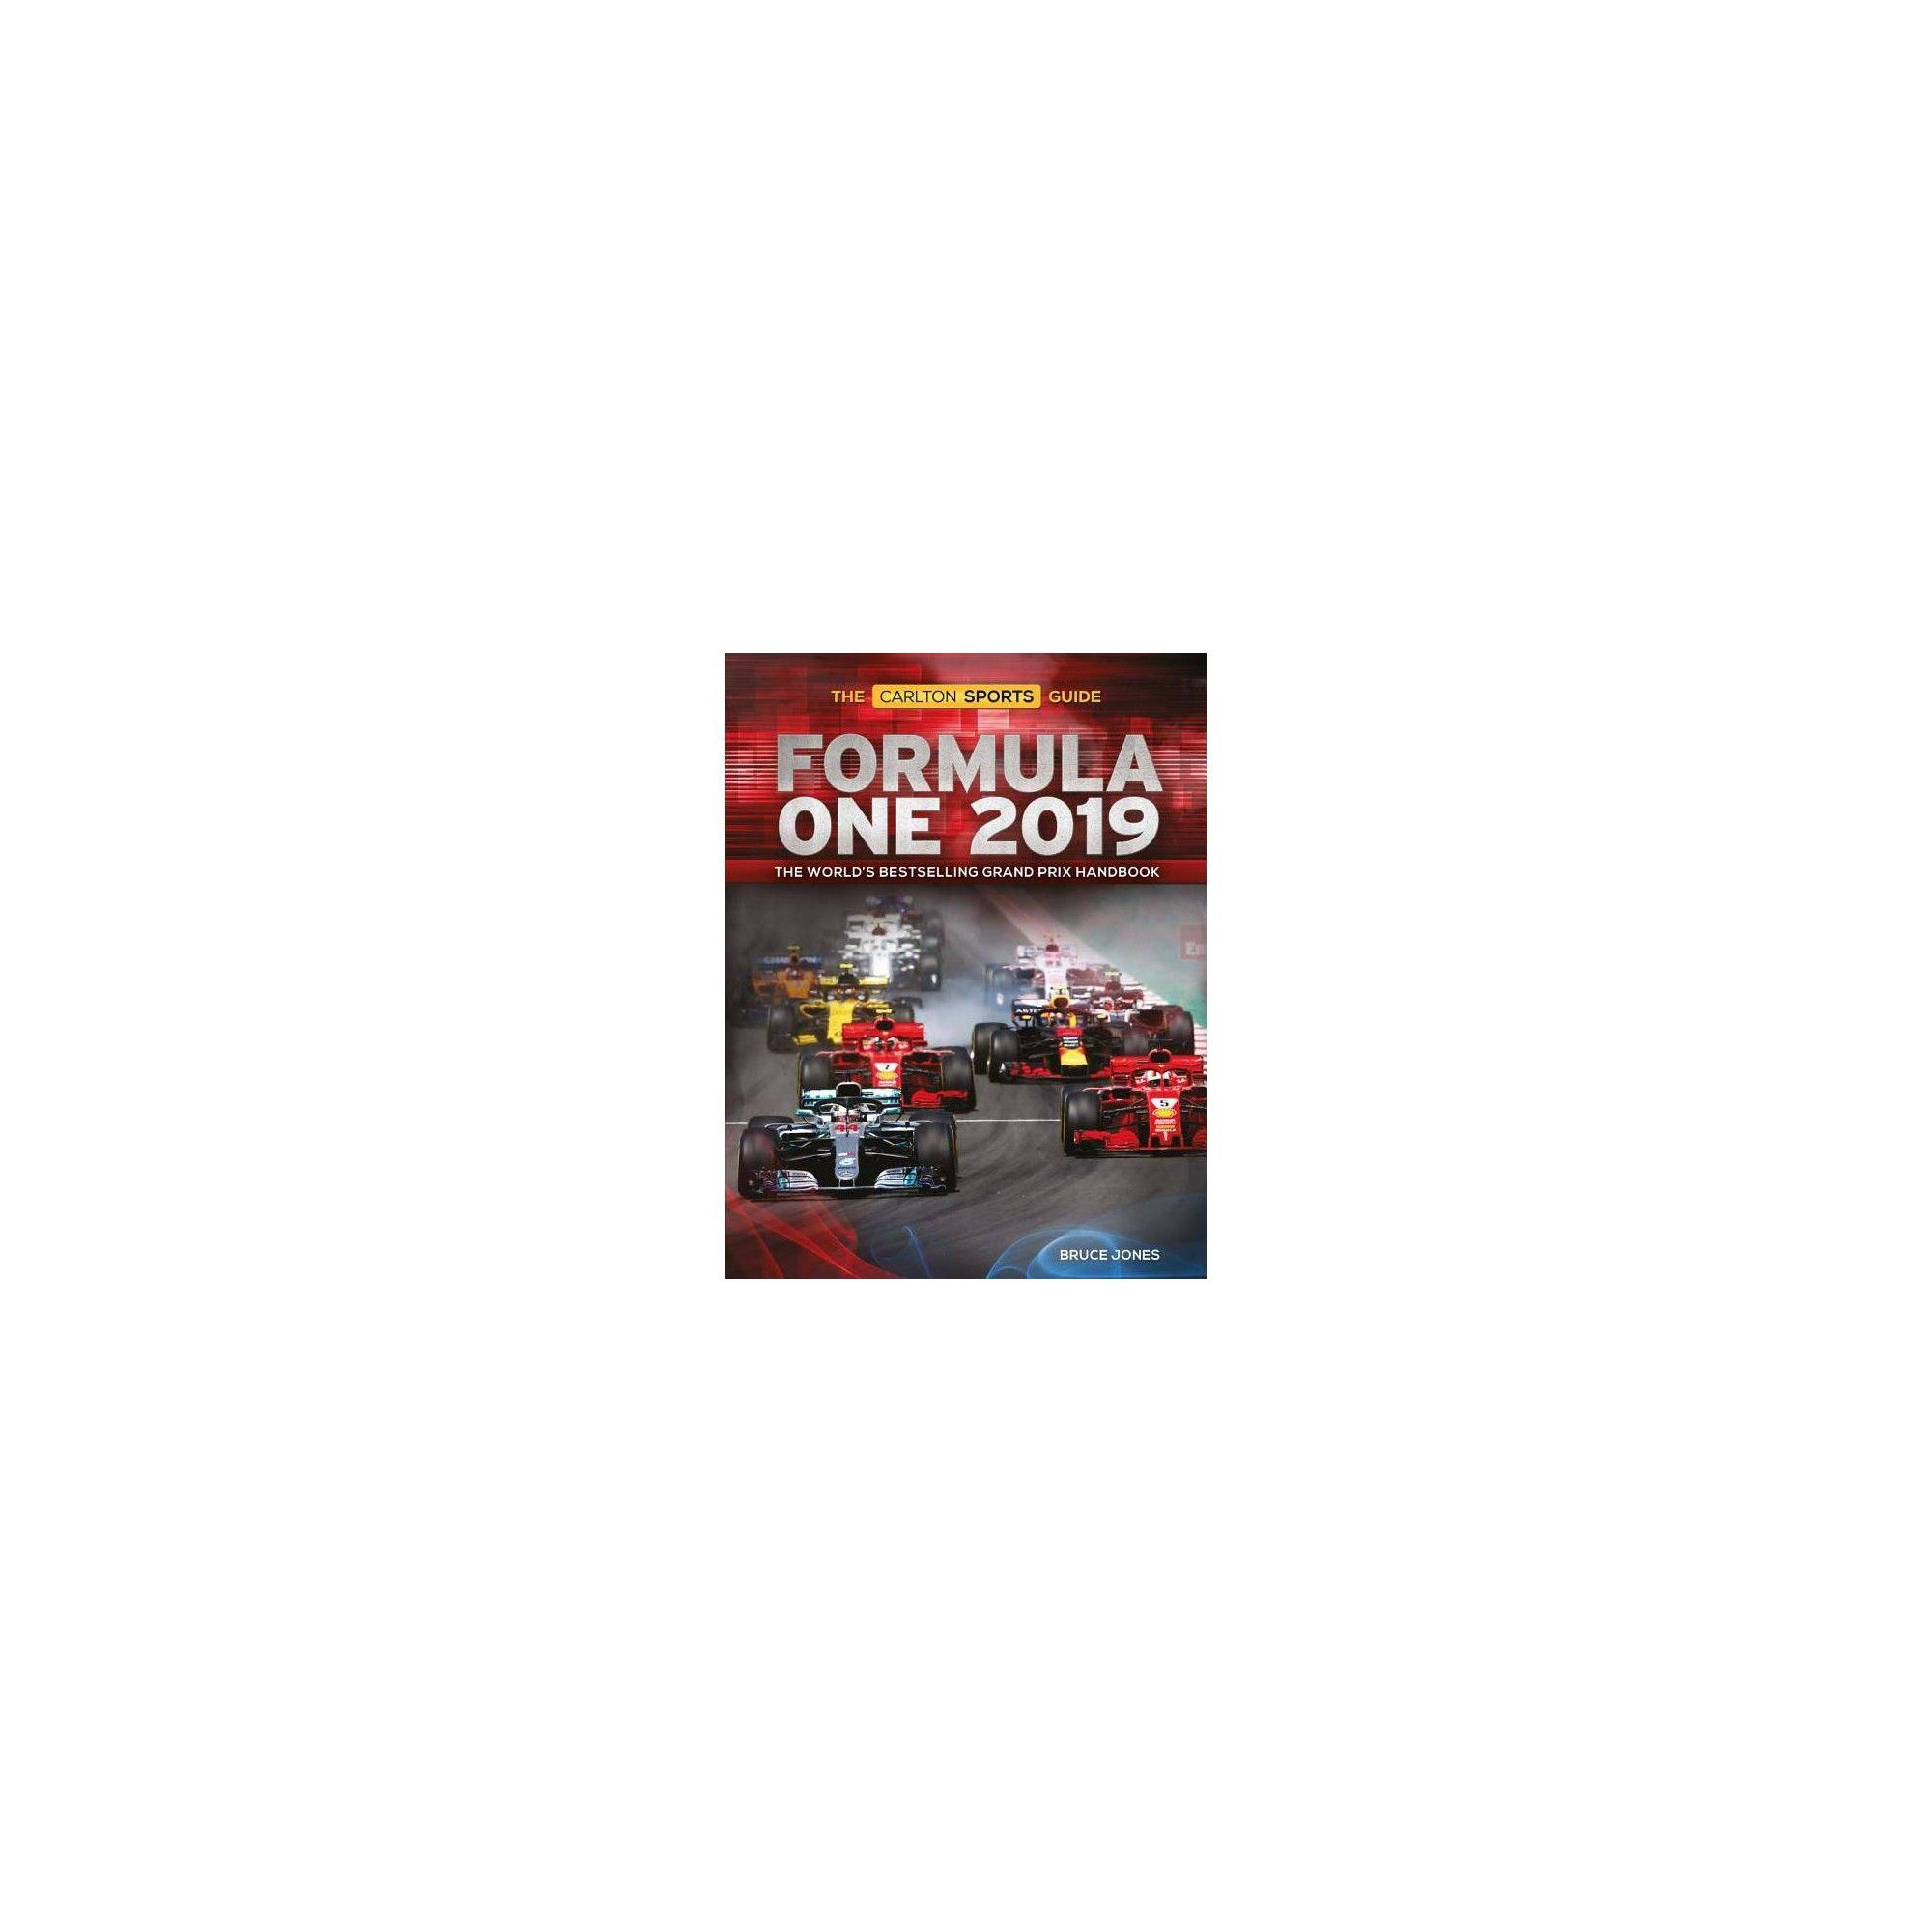 Sergey Sirotkin: Formula One 2019 - by Bruce Jones (Paperback).  Fans of Formula One can get up to speed...